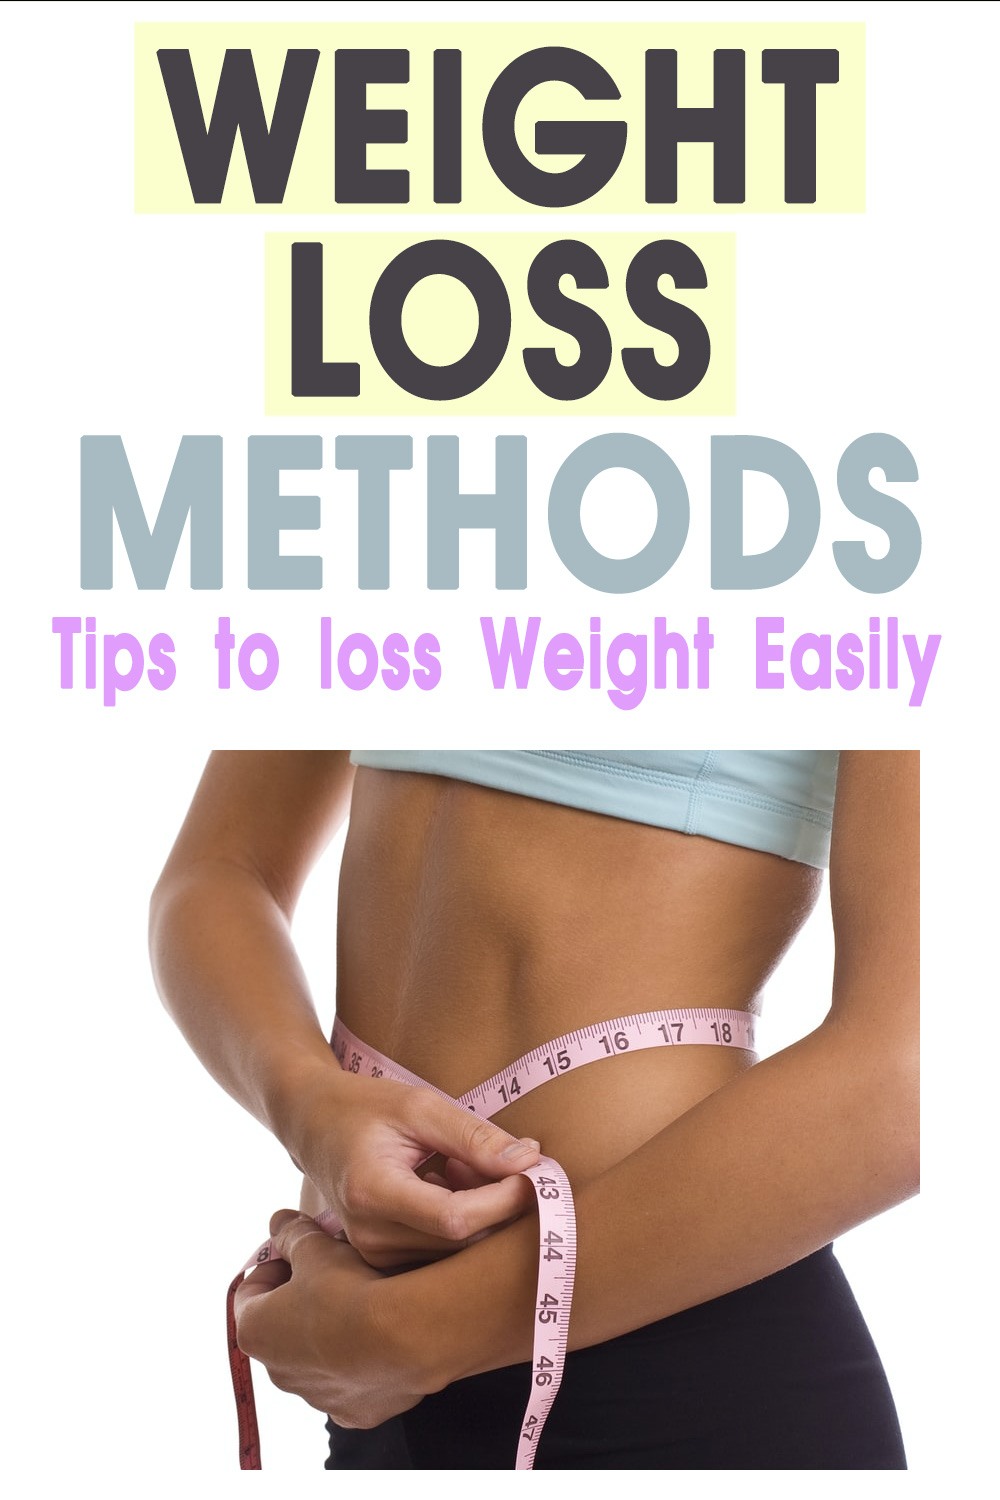 weight loss methods - tips to lose weight